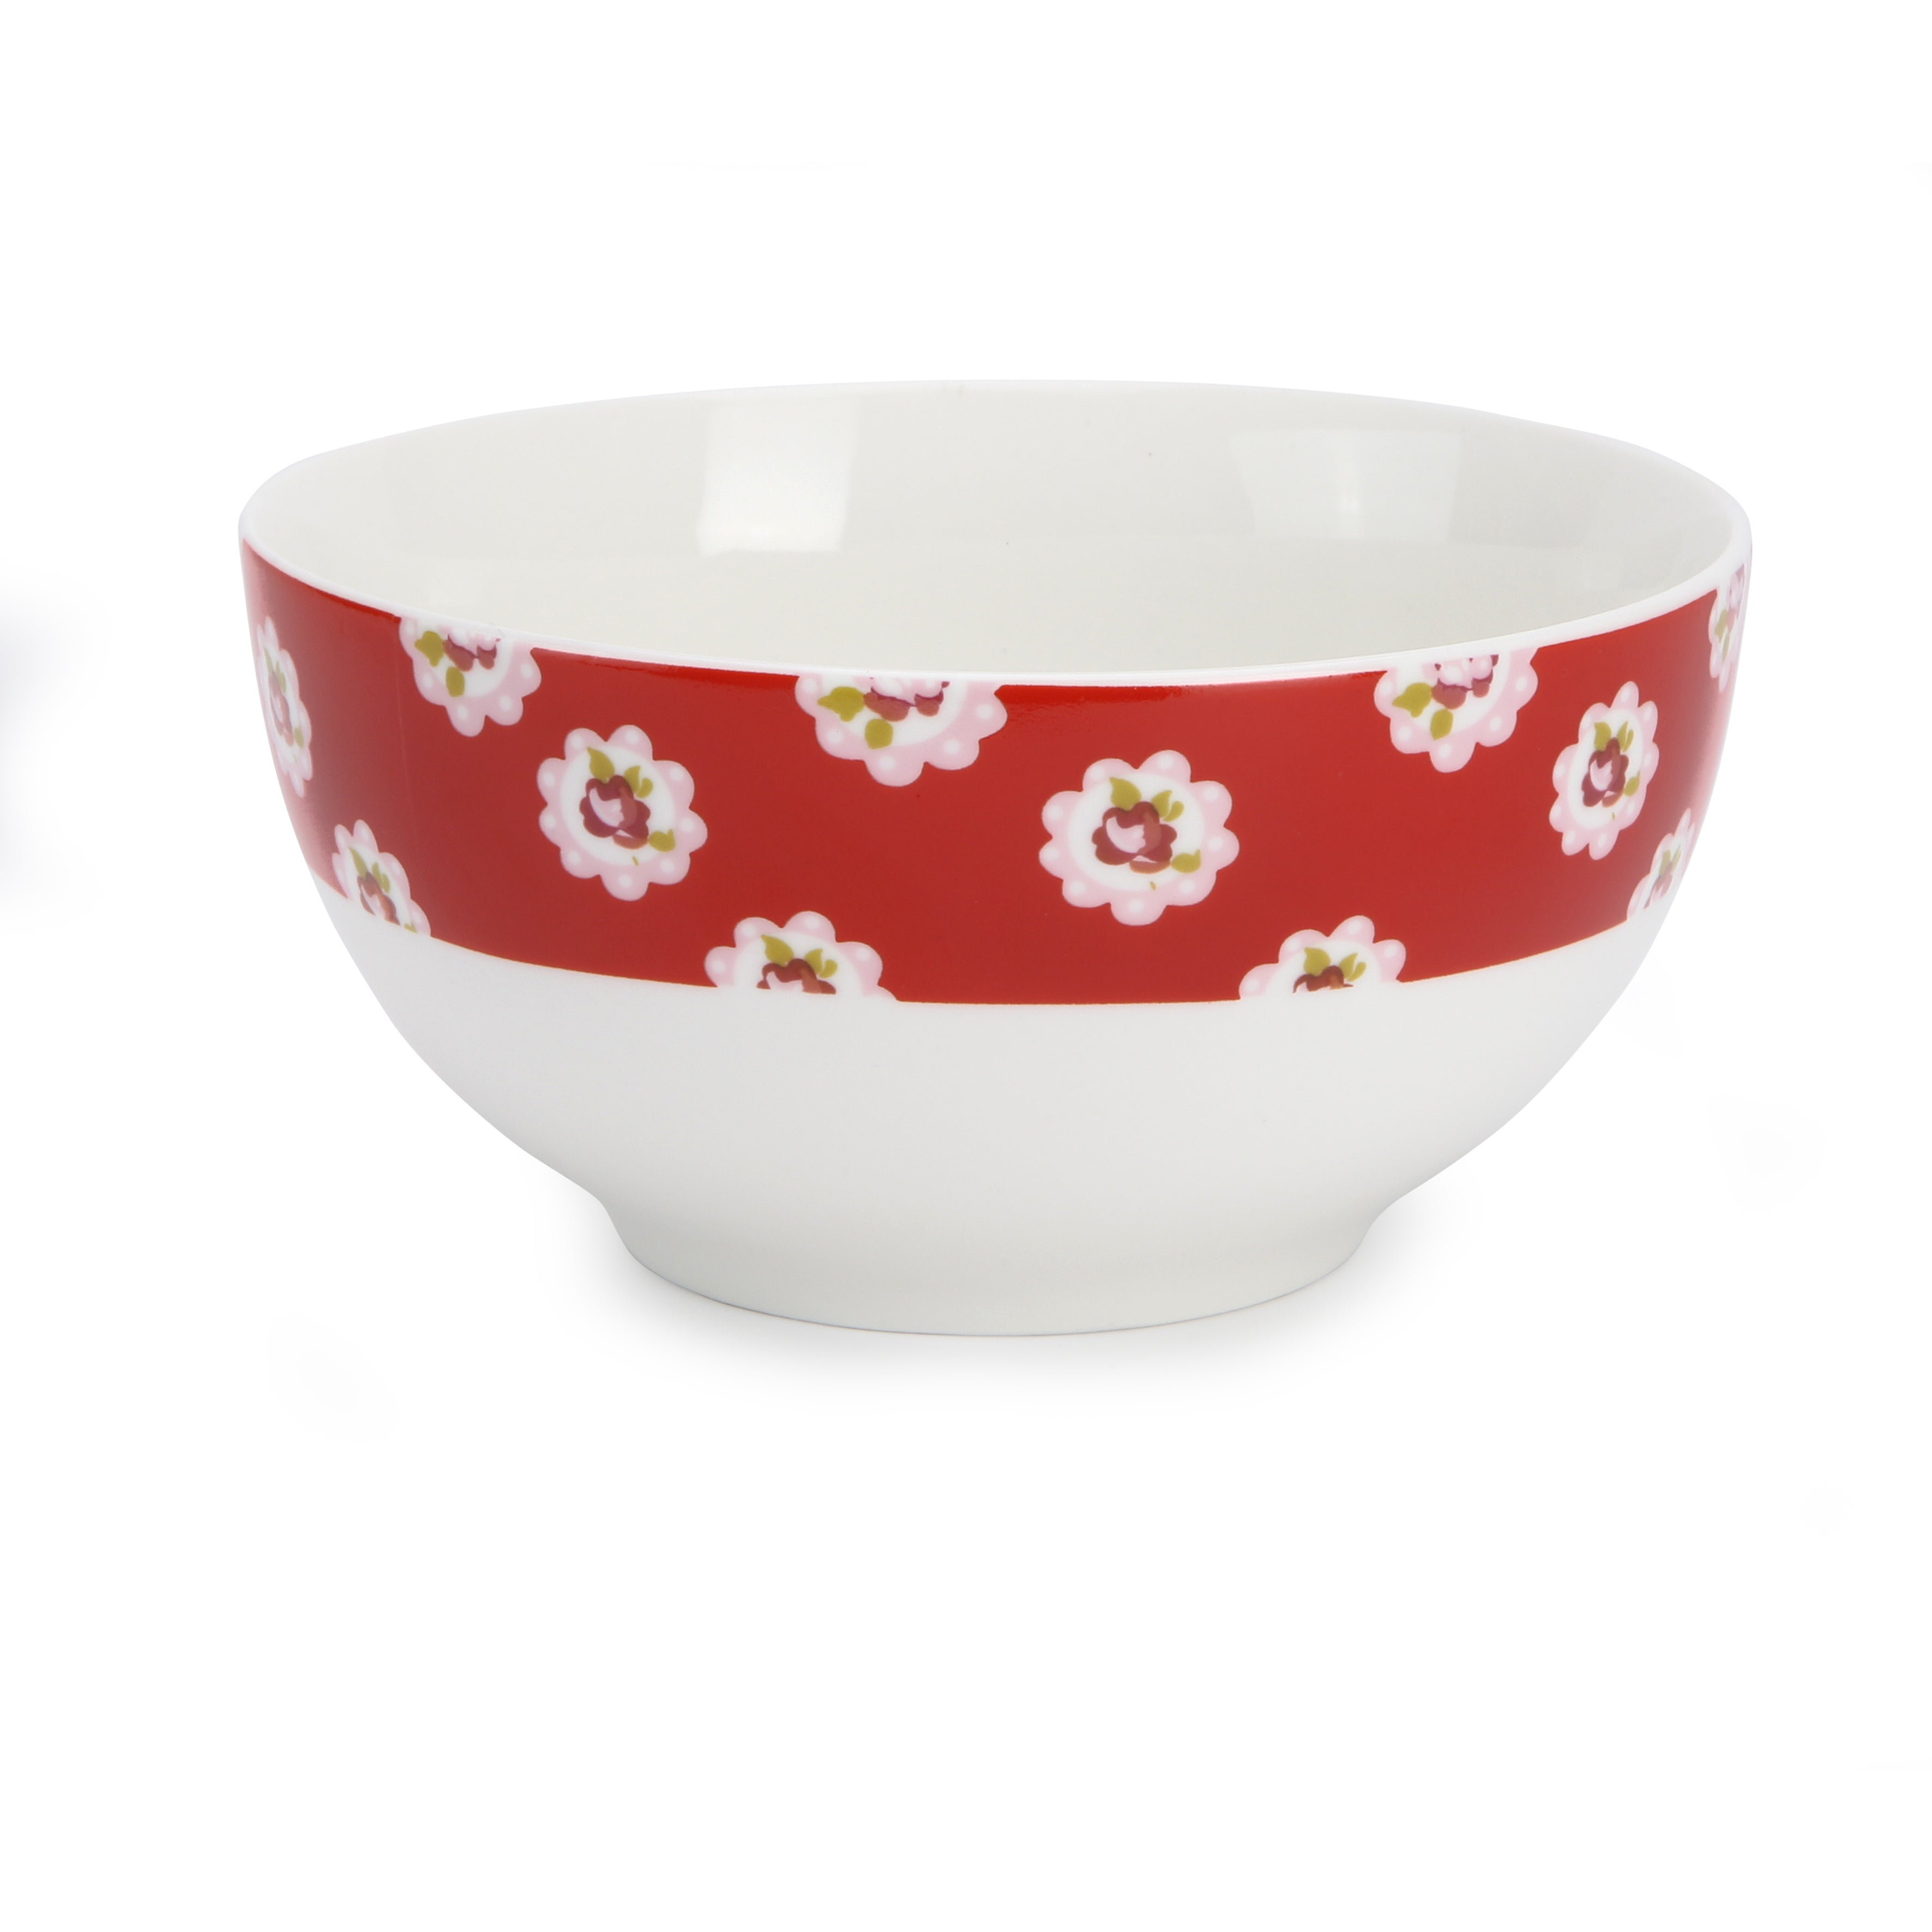 Rose and Ellis Allexton Collection Bowl